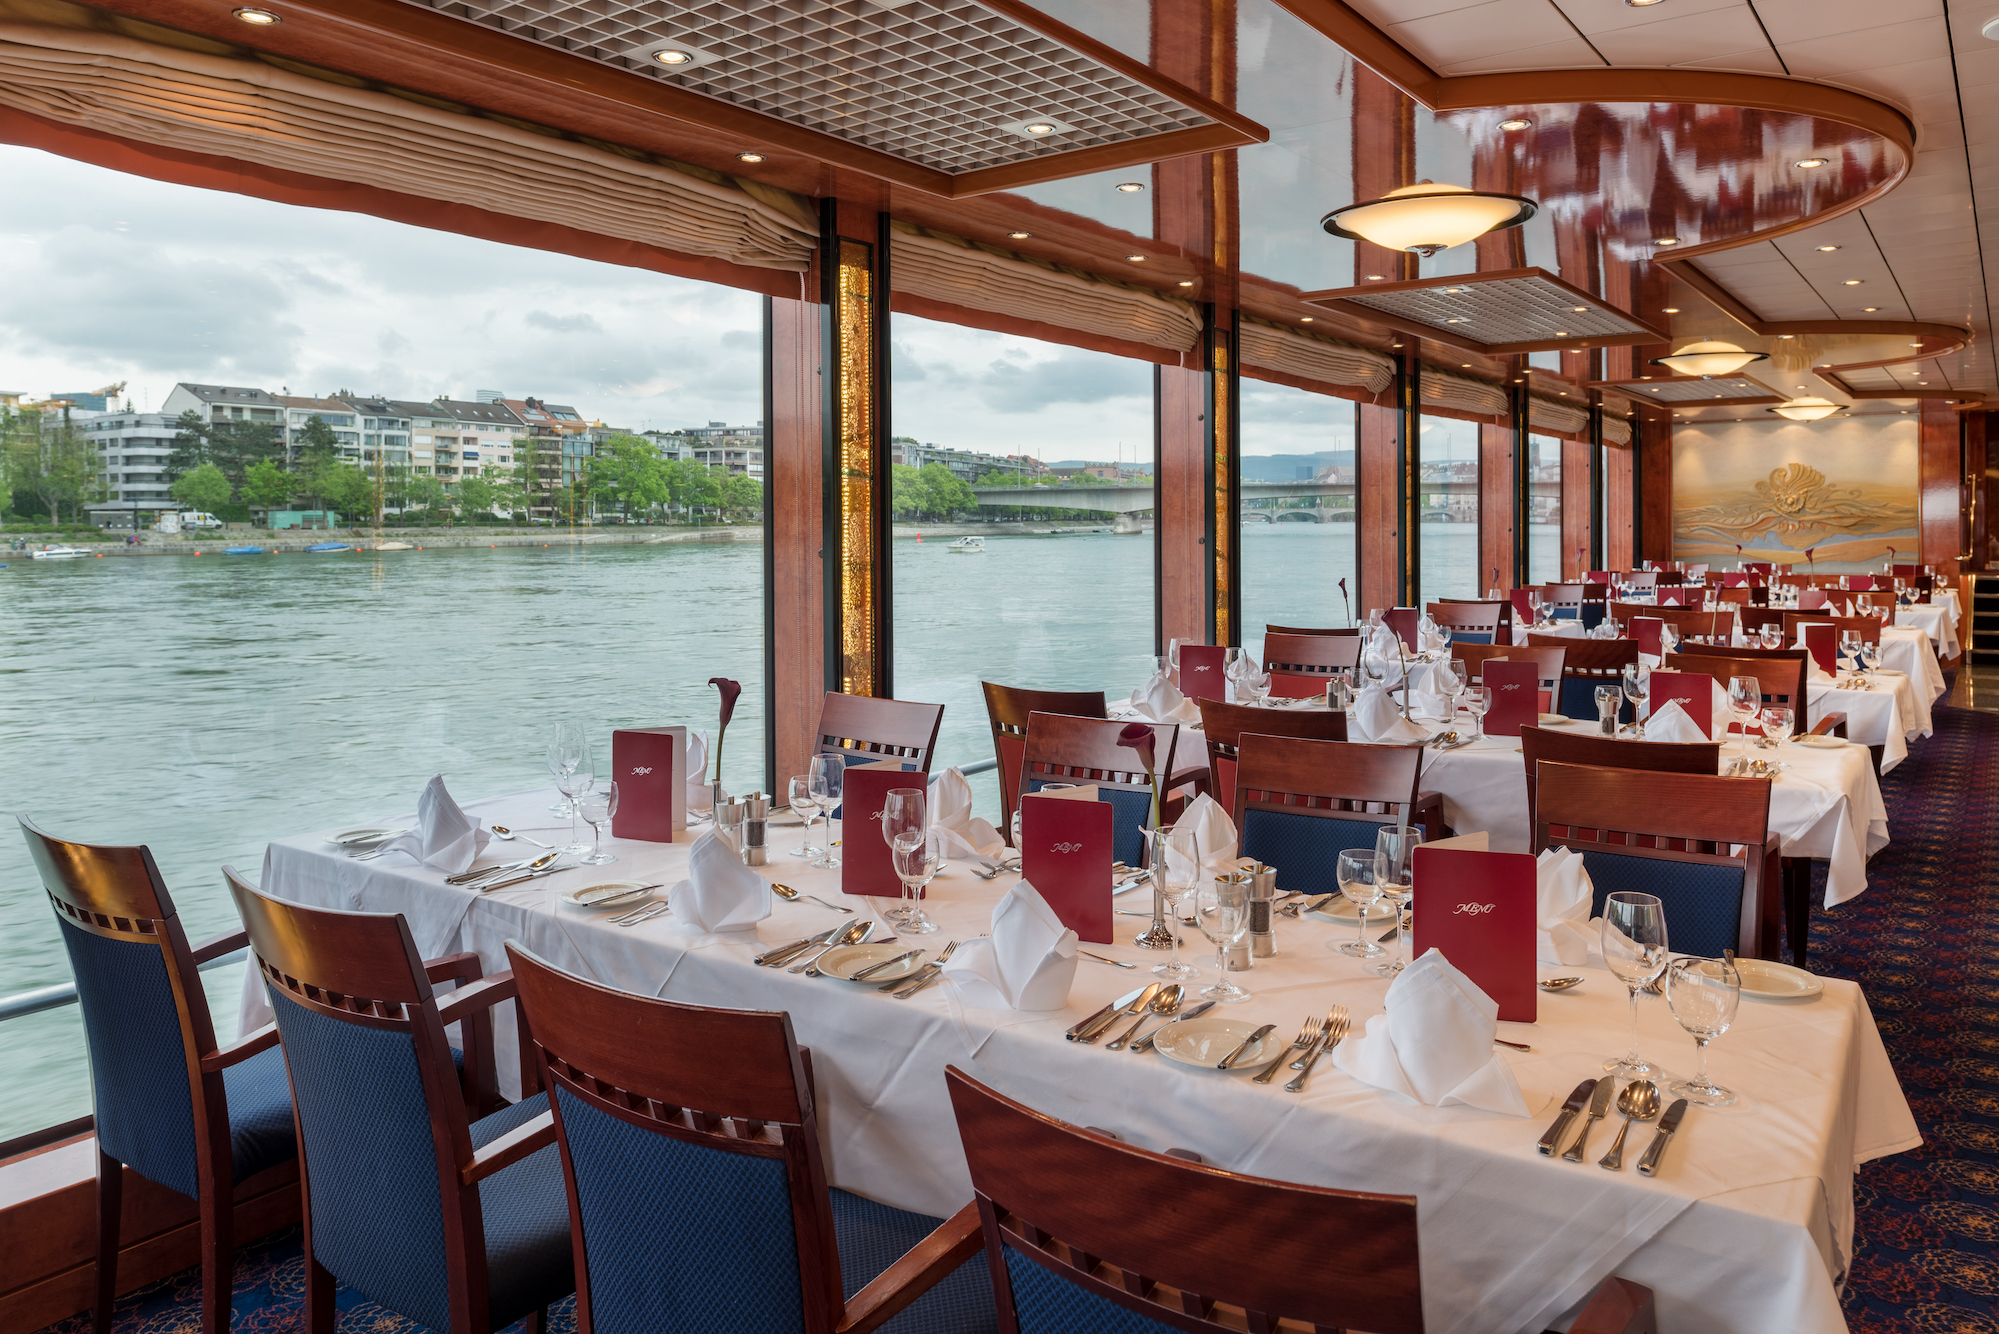 MS Thurgau Ultra Panorama Restaurant